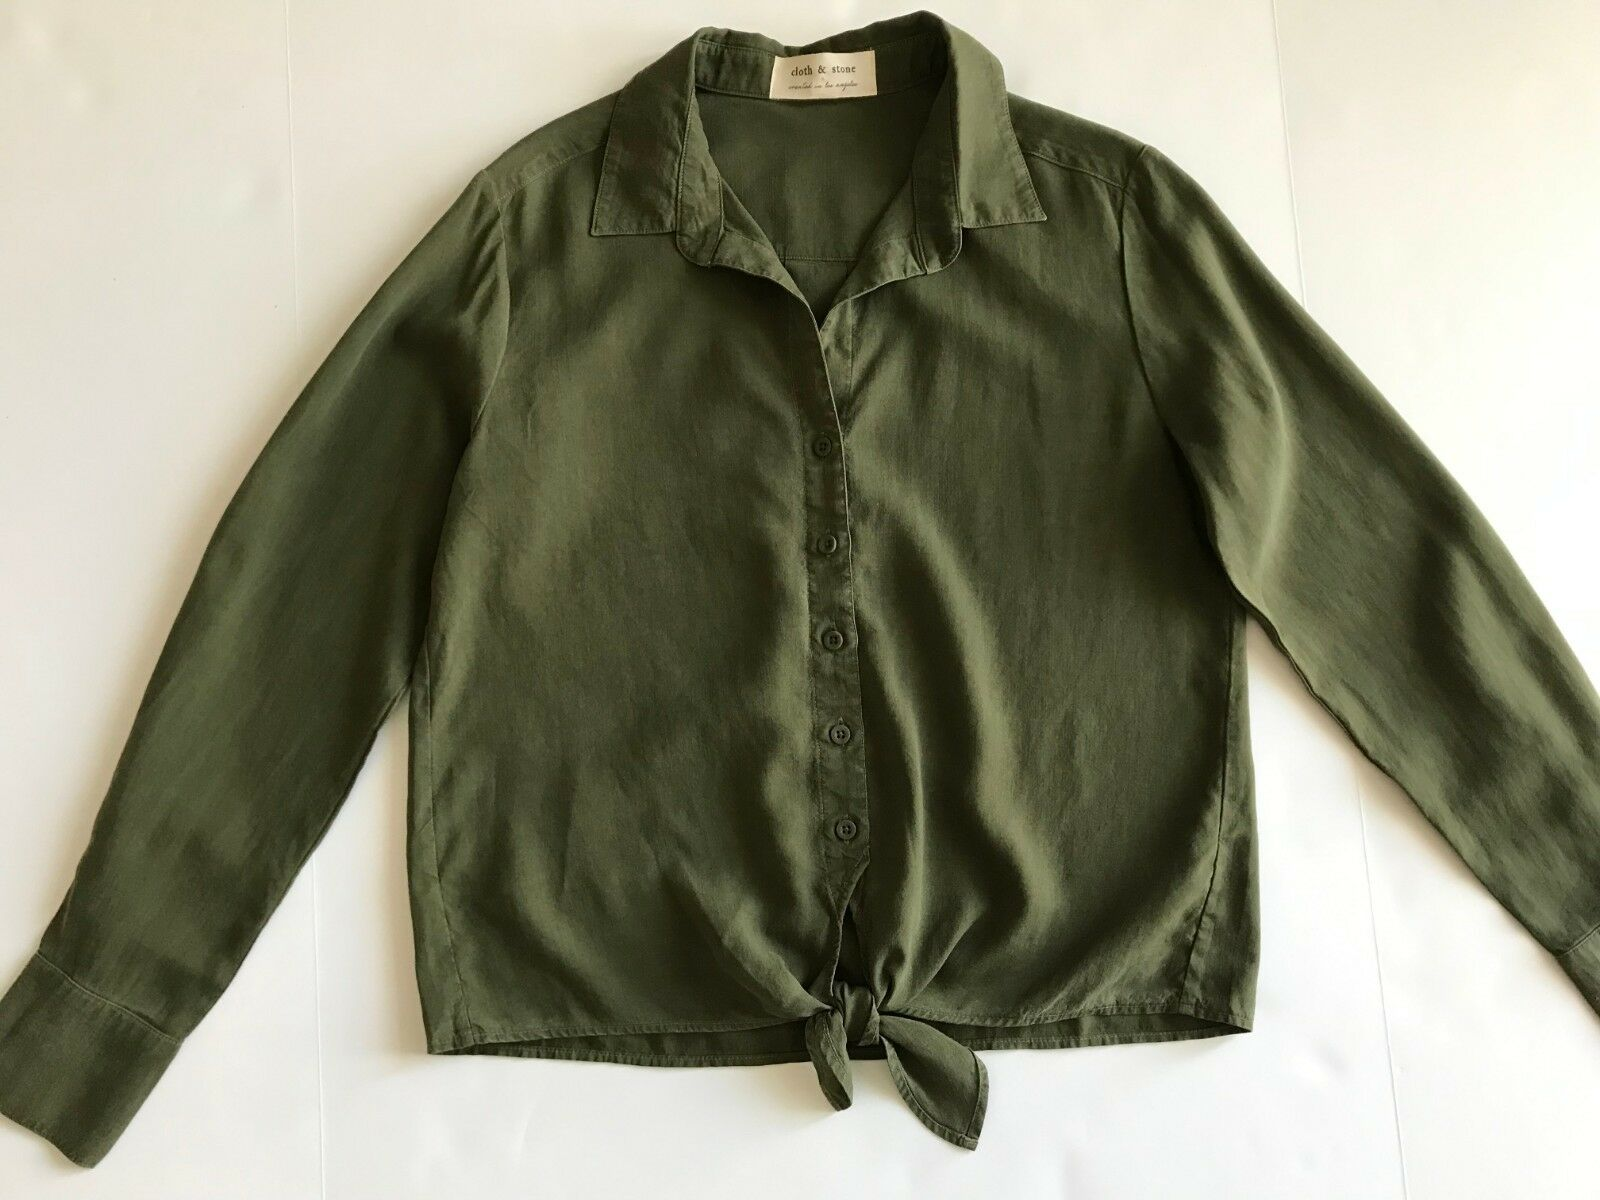 NEW CLOTH & STONE SzS TIE FRONT LONG SLEEVE BUTTON DOWN SHIRT BURNT OLIVE